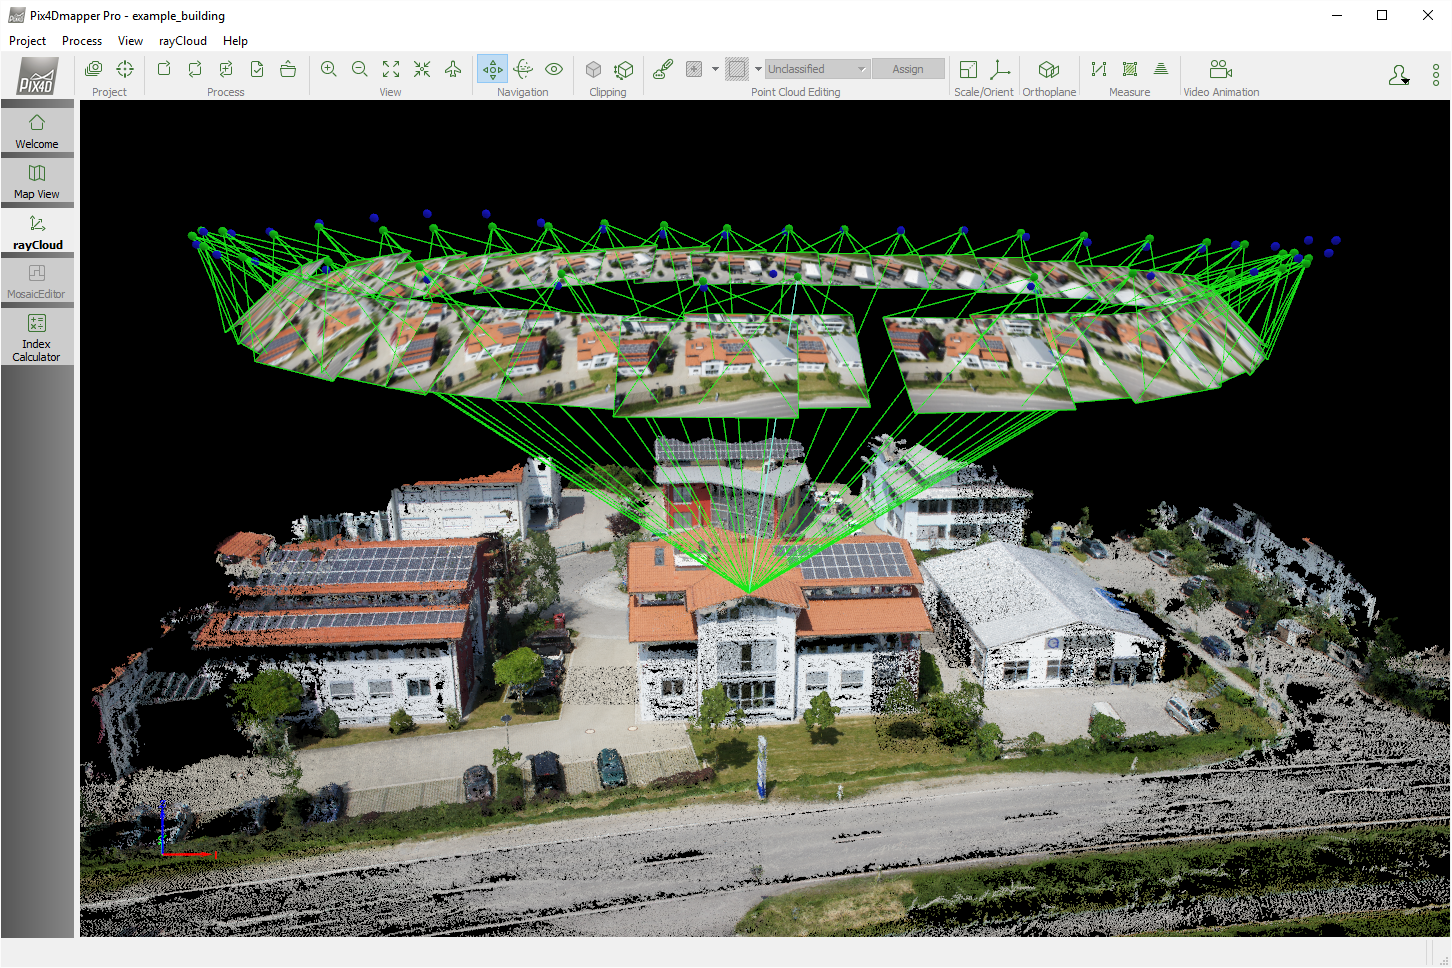 Pix4D to put up with global workshop to train users for drone flying